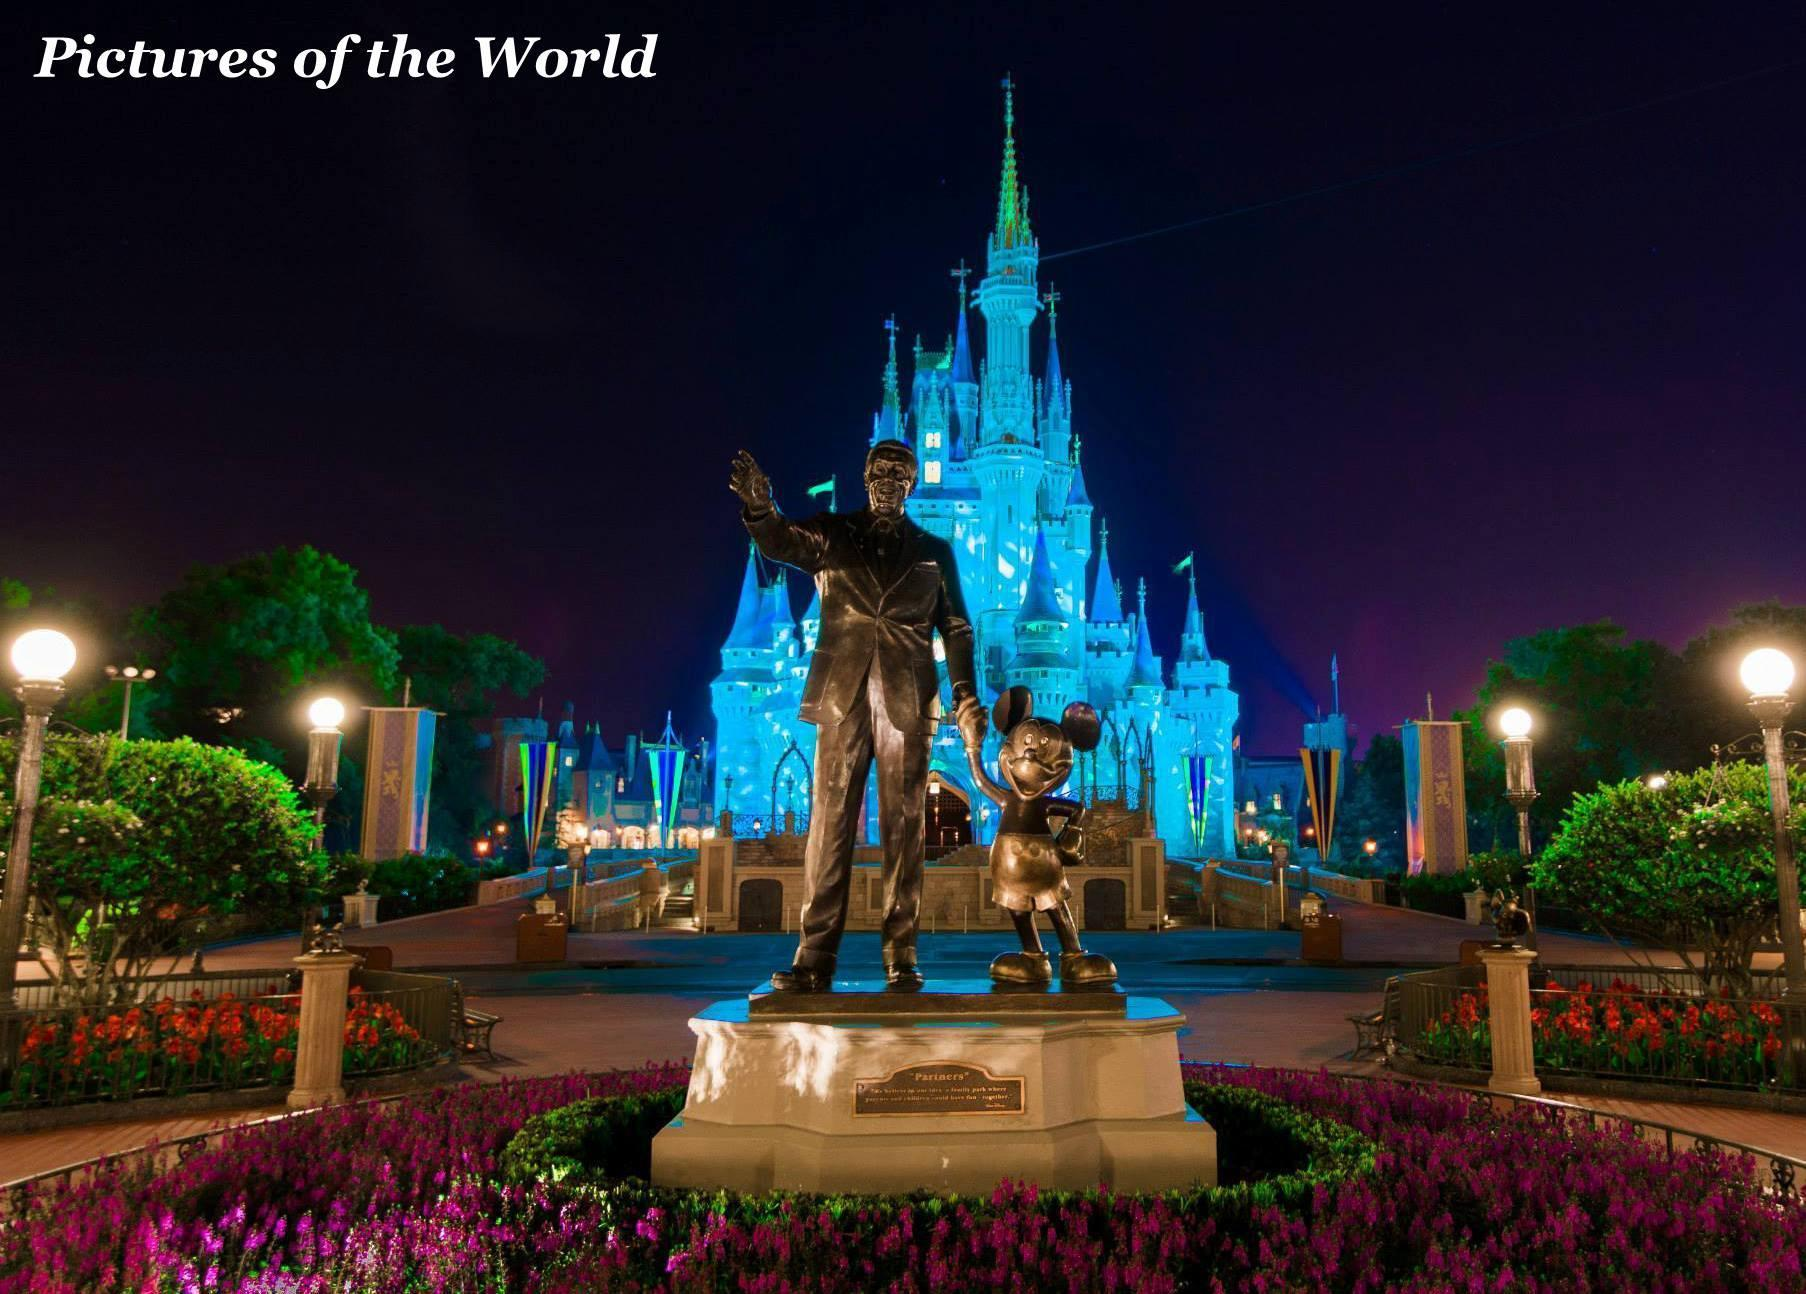 What was Disneyworld originally going to be named?